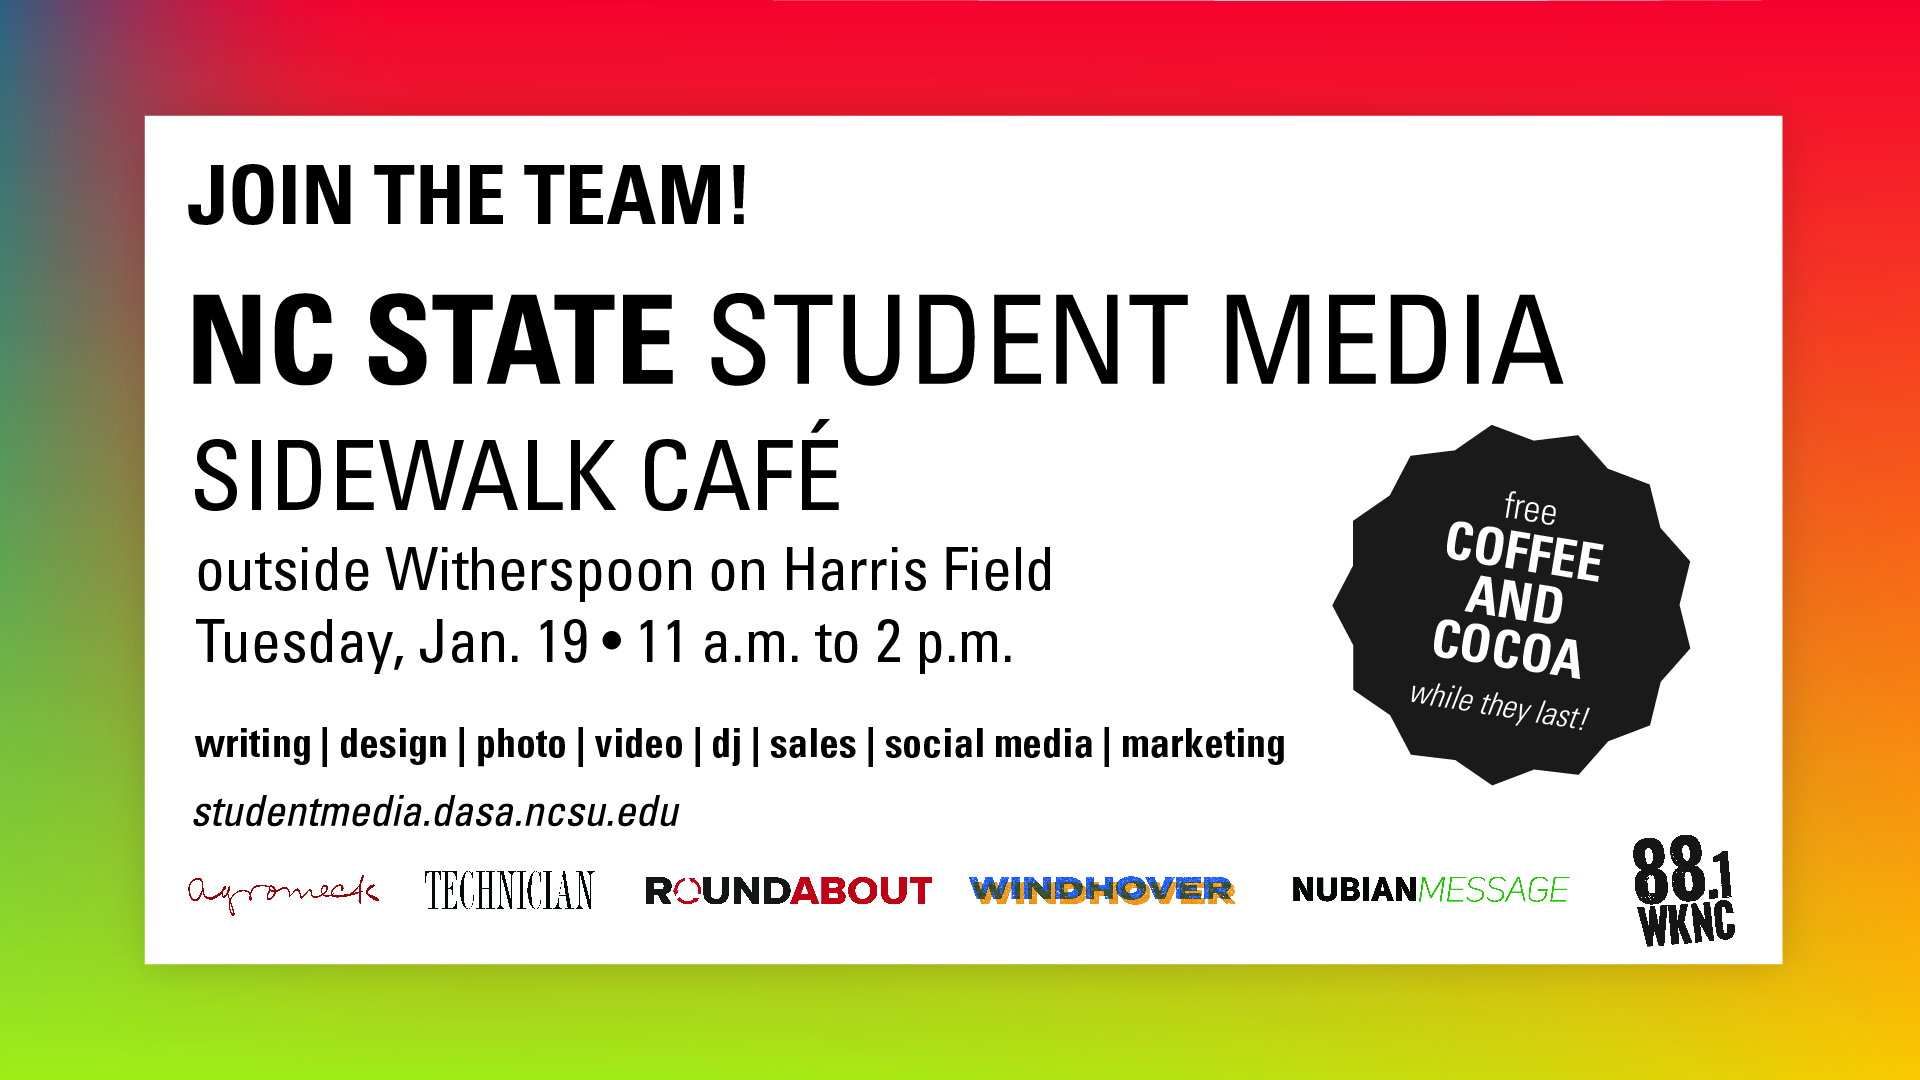 Poster for Student Media Sidewalk Cafe